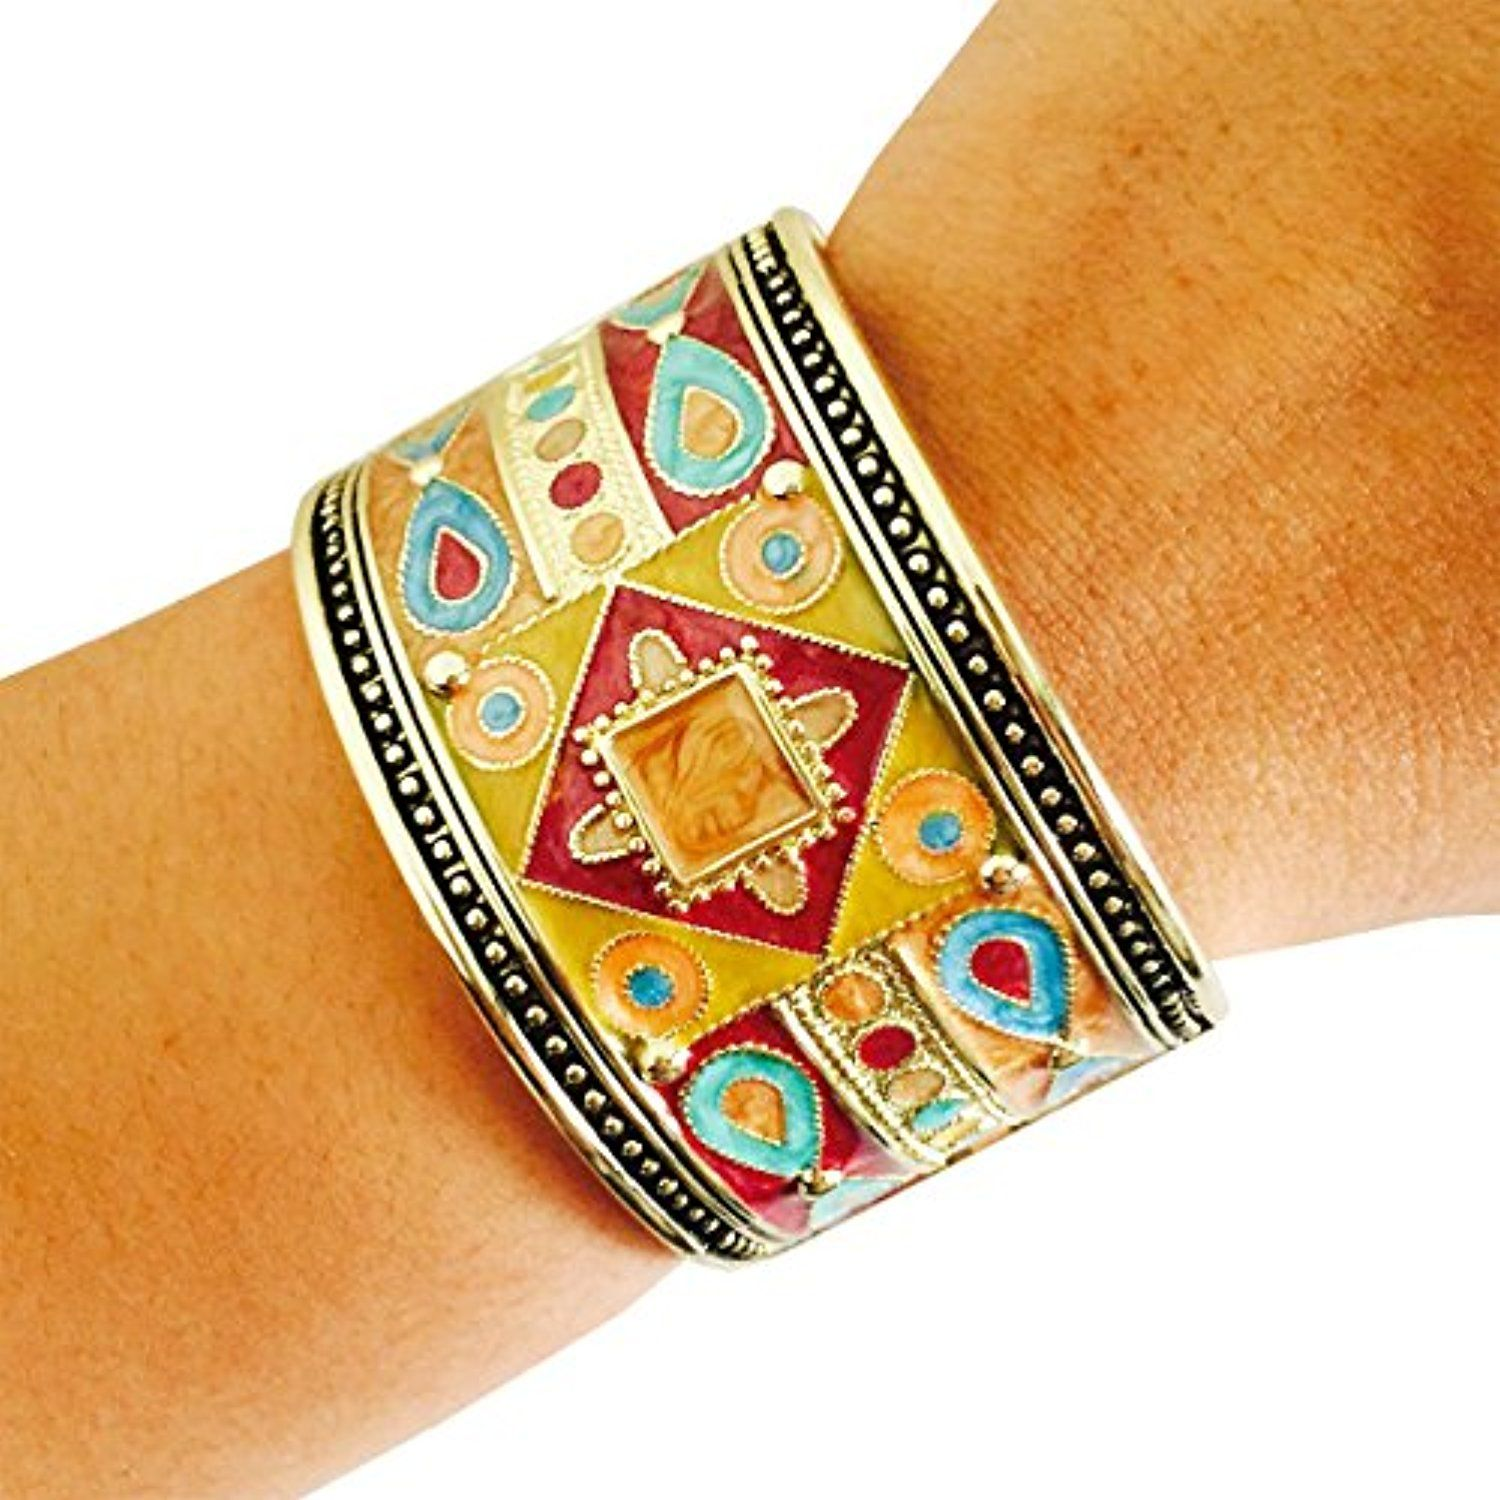 Fitbit bracelet to hide and protect fitbit flex or flex fitness